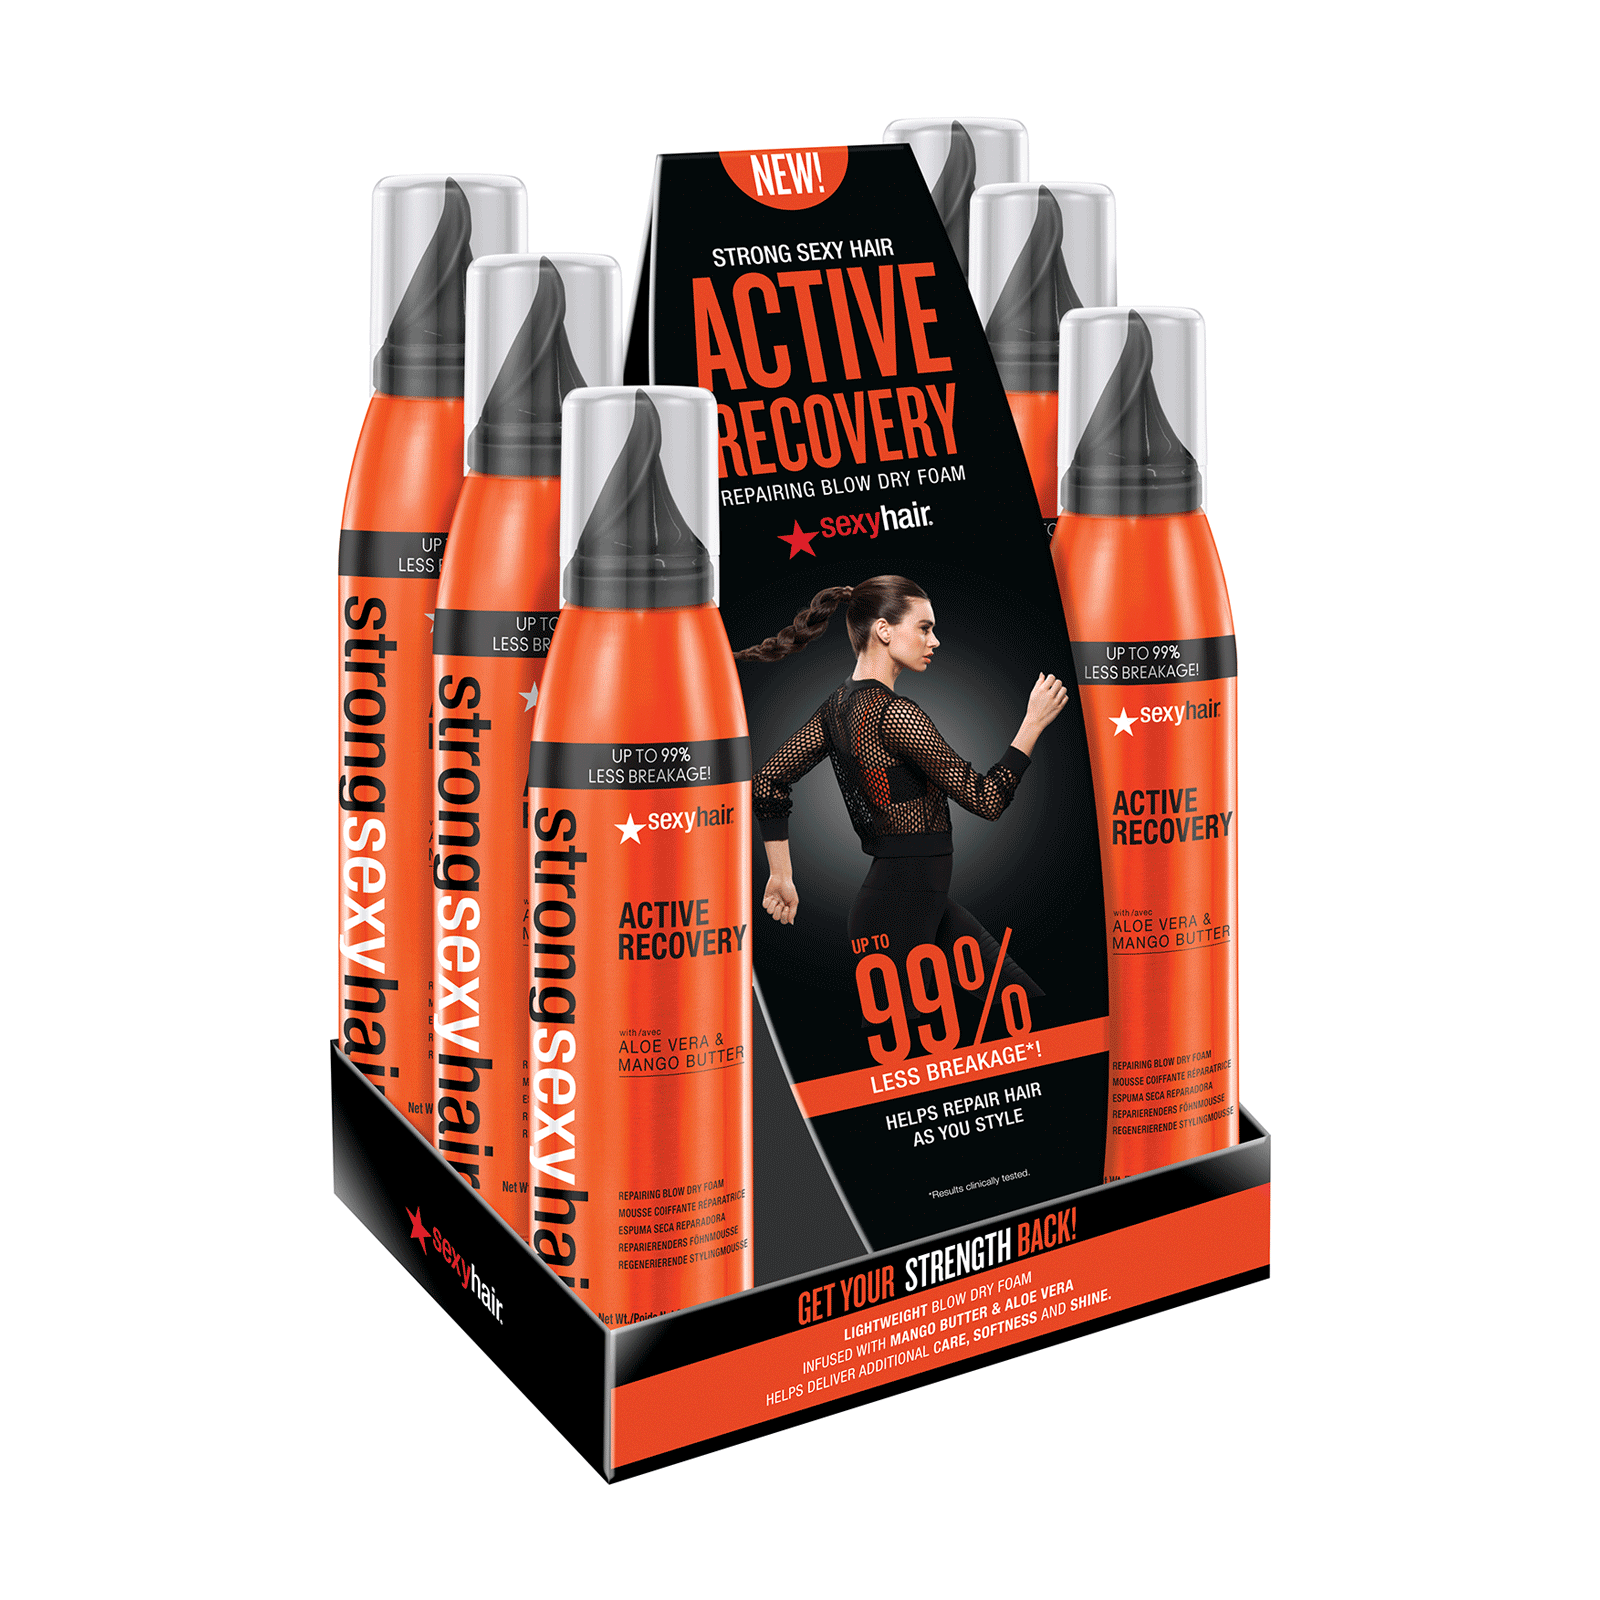 Active Recovery Repair Blow Dry Foam - 6 Count Display